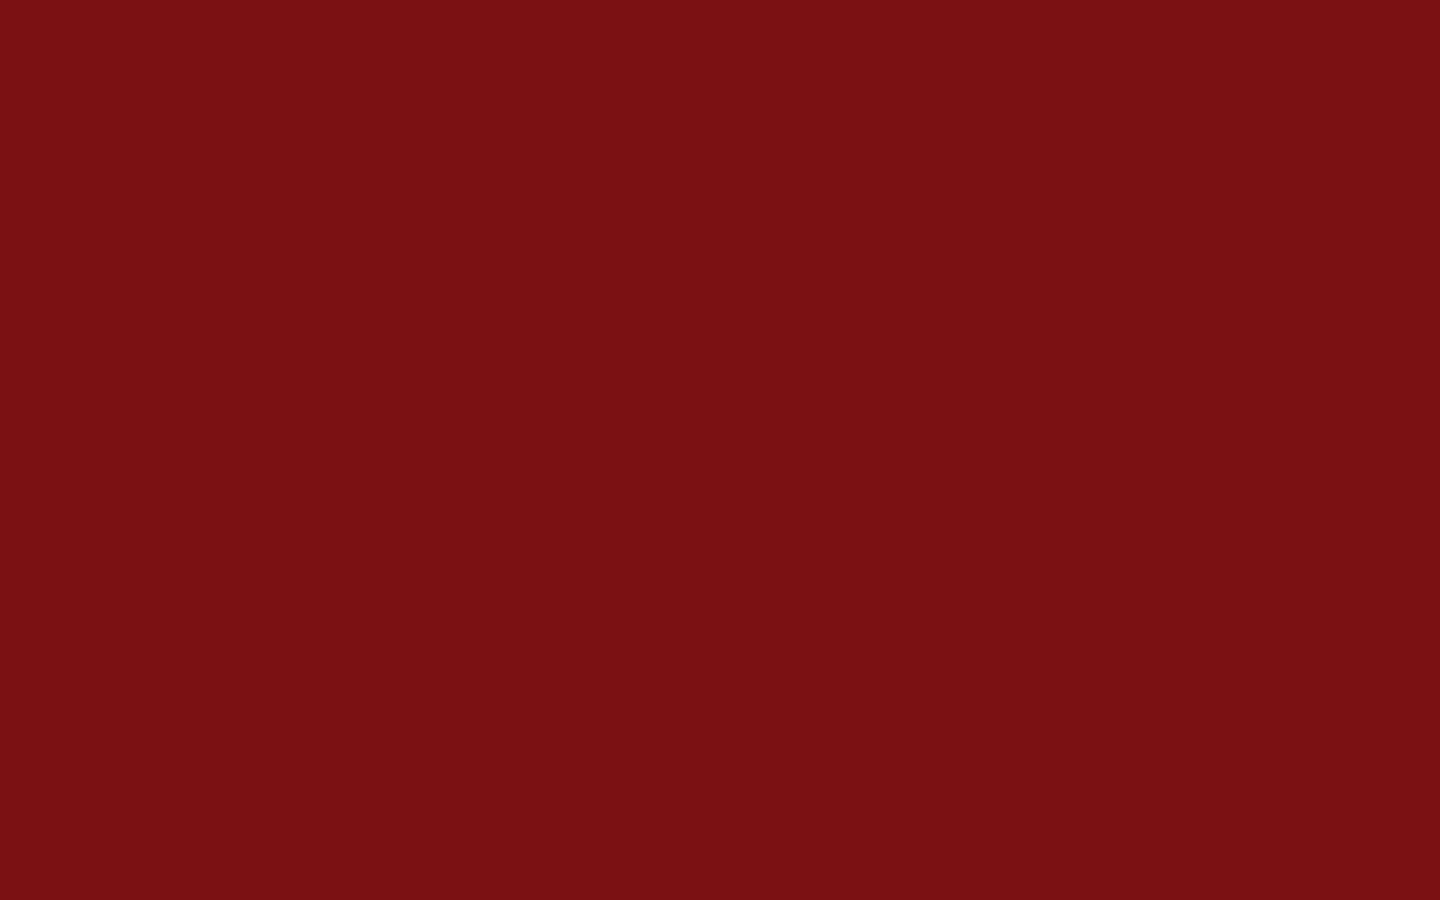 1440x900 UP Maroon Solid Color Background